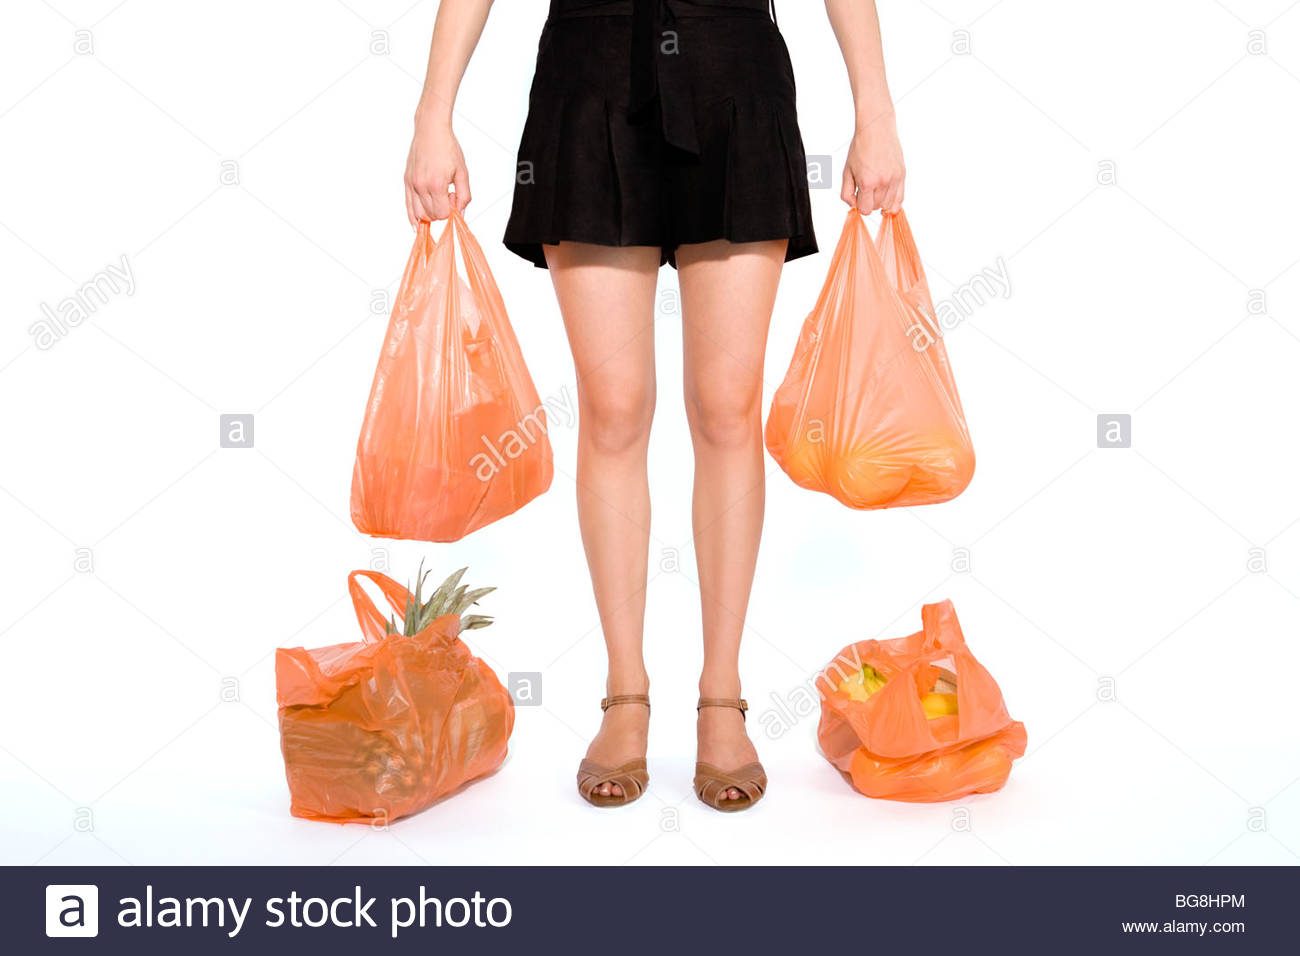 A Young Woman Carrying Heavy Shopping Bags - Stock Image